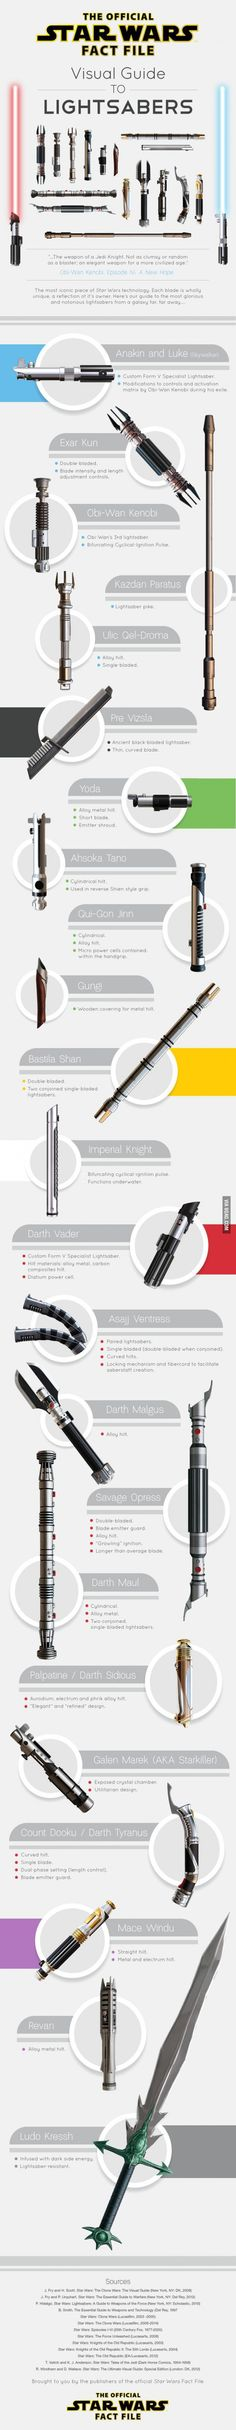 The Visual Guide to the Lightsabers of Star Wars. Star Wars Fans Unite! (Sorry for the long post)